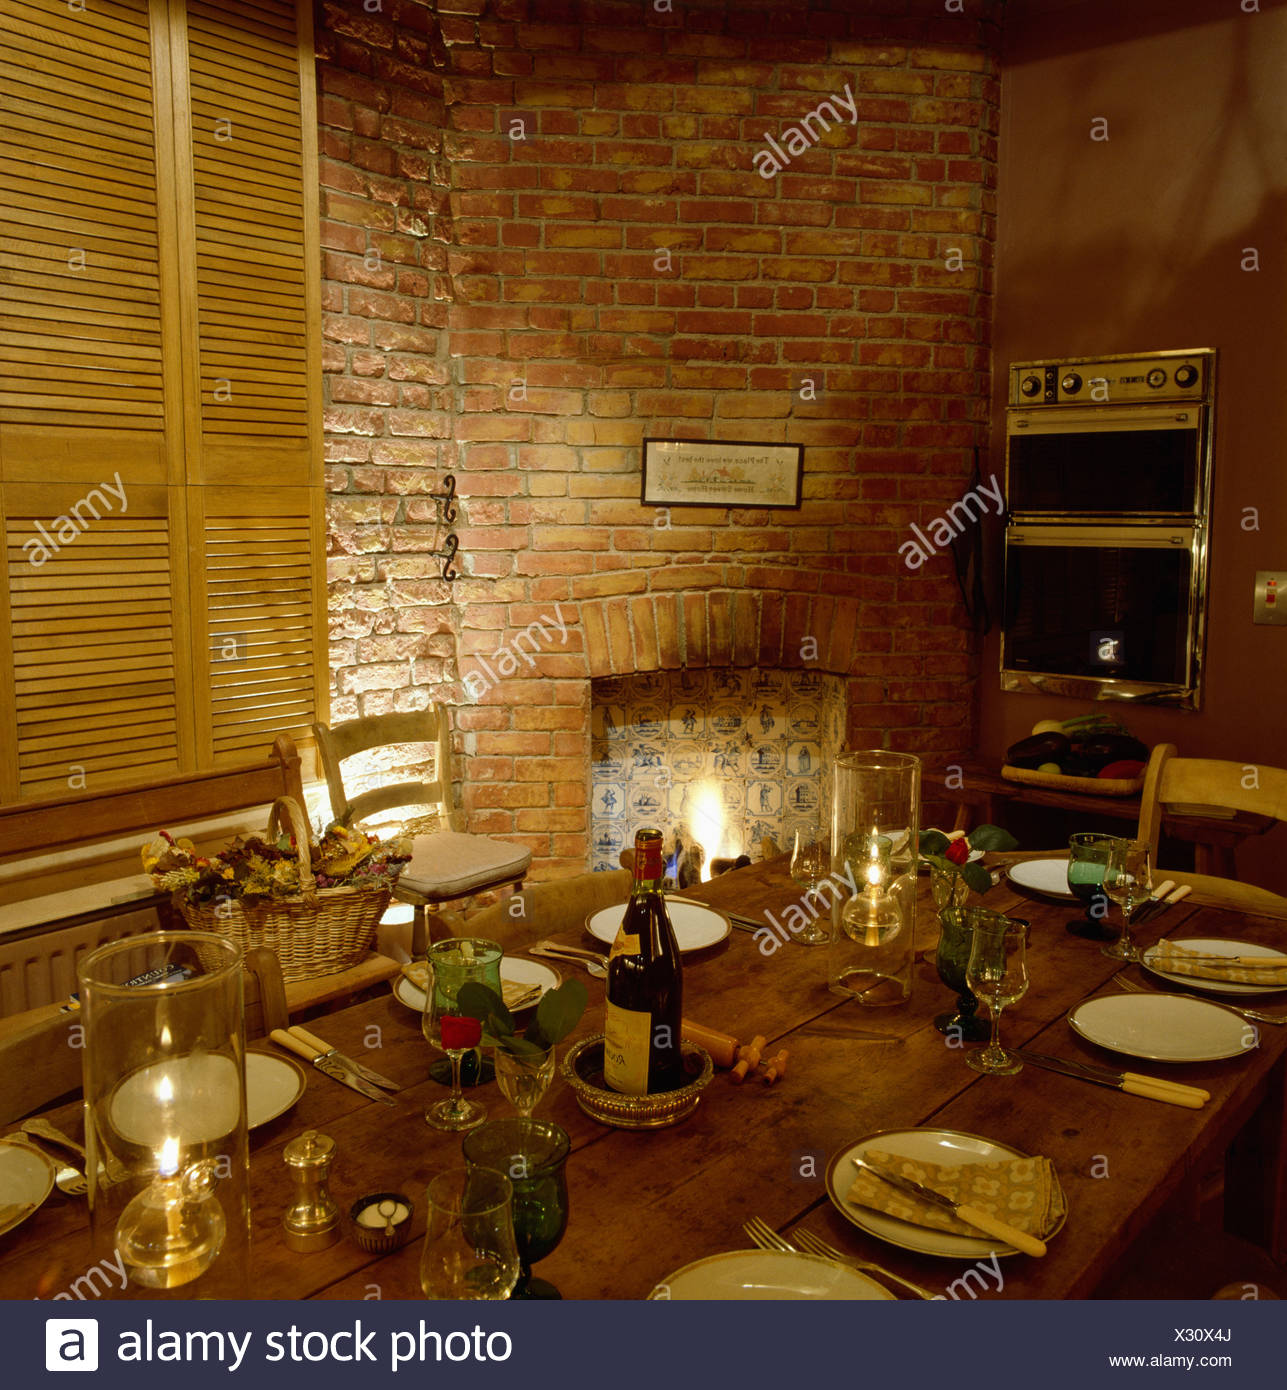 Dining Table With Place Settings Beside Fireplace In Brick Wall Stock Photo Alamy